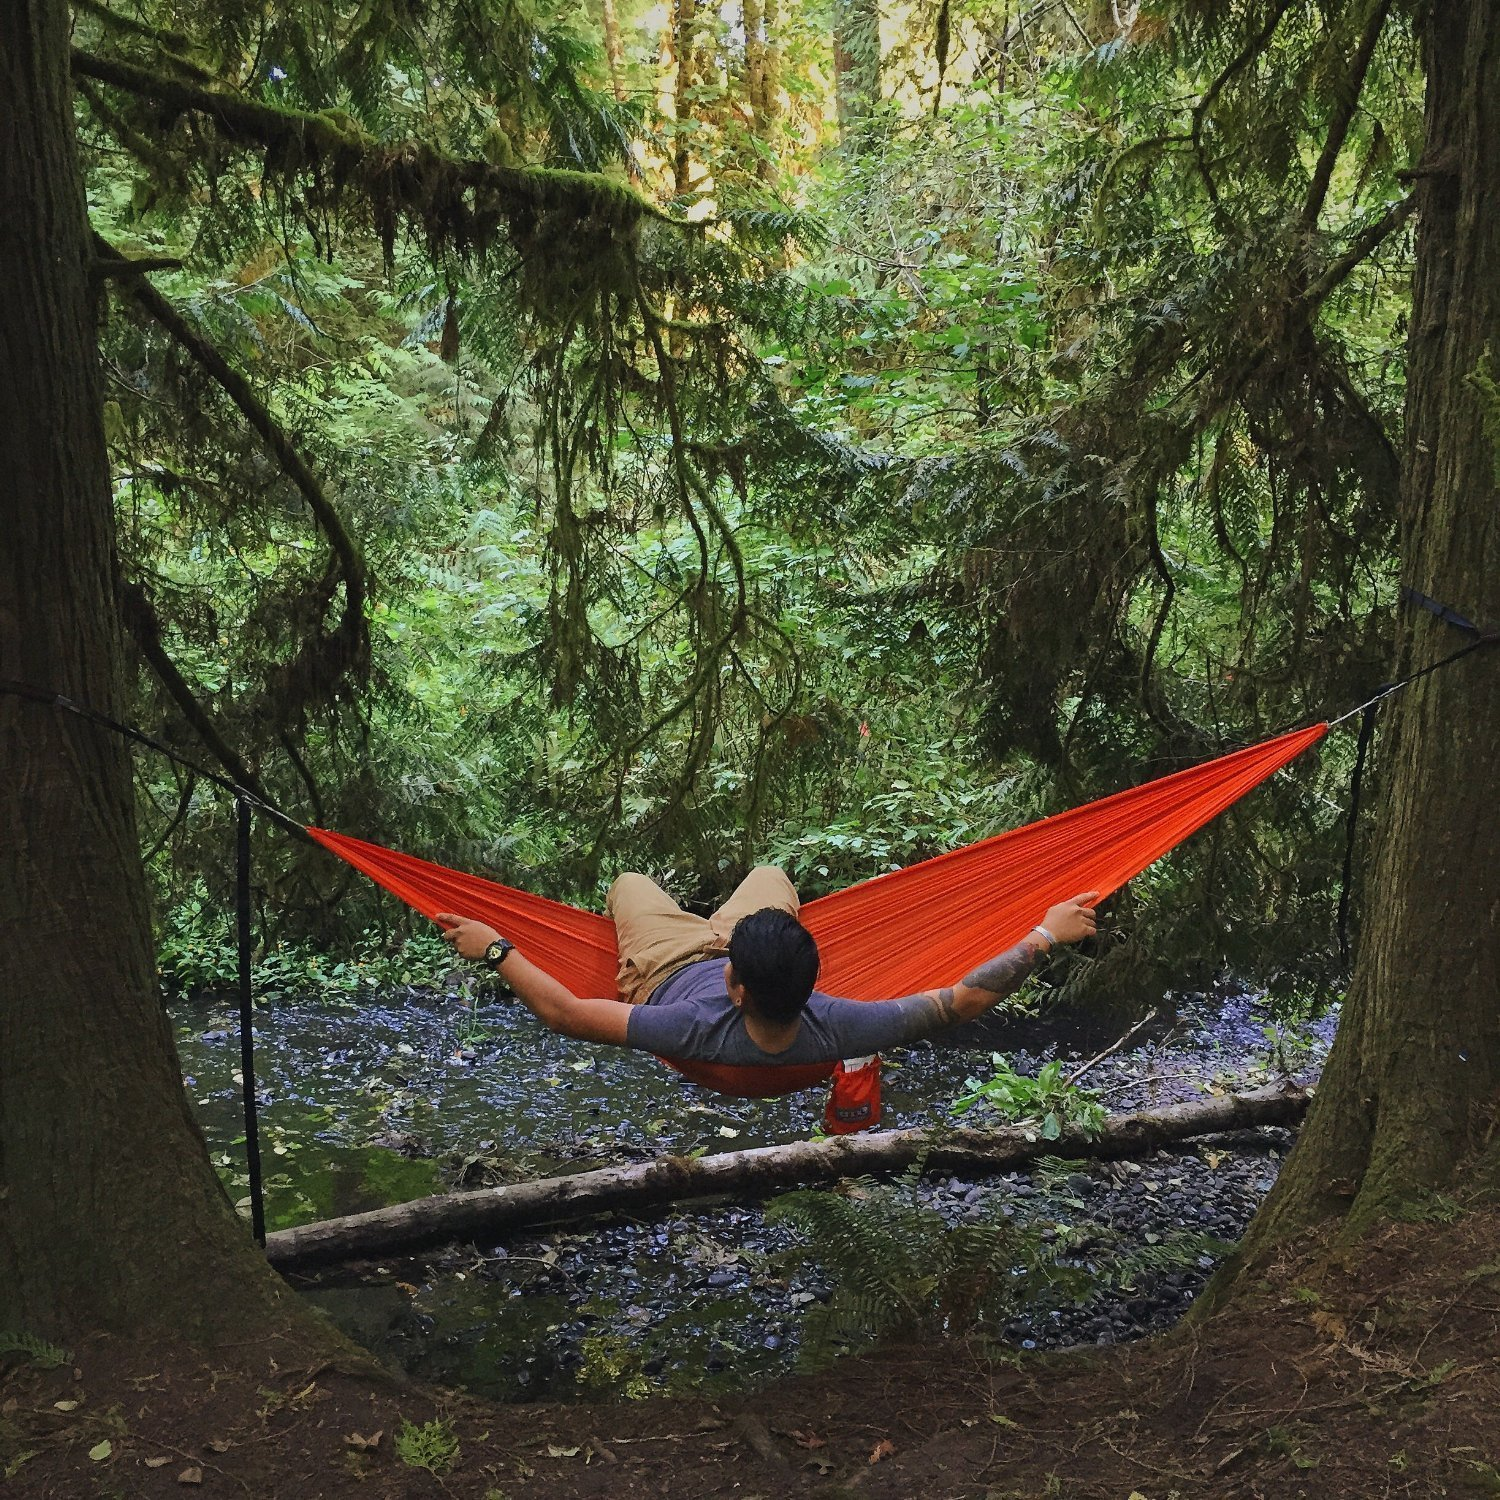 of eno co patrofi tent a sale best amp veloclub hammock